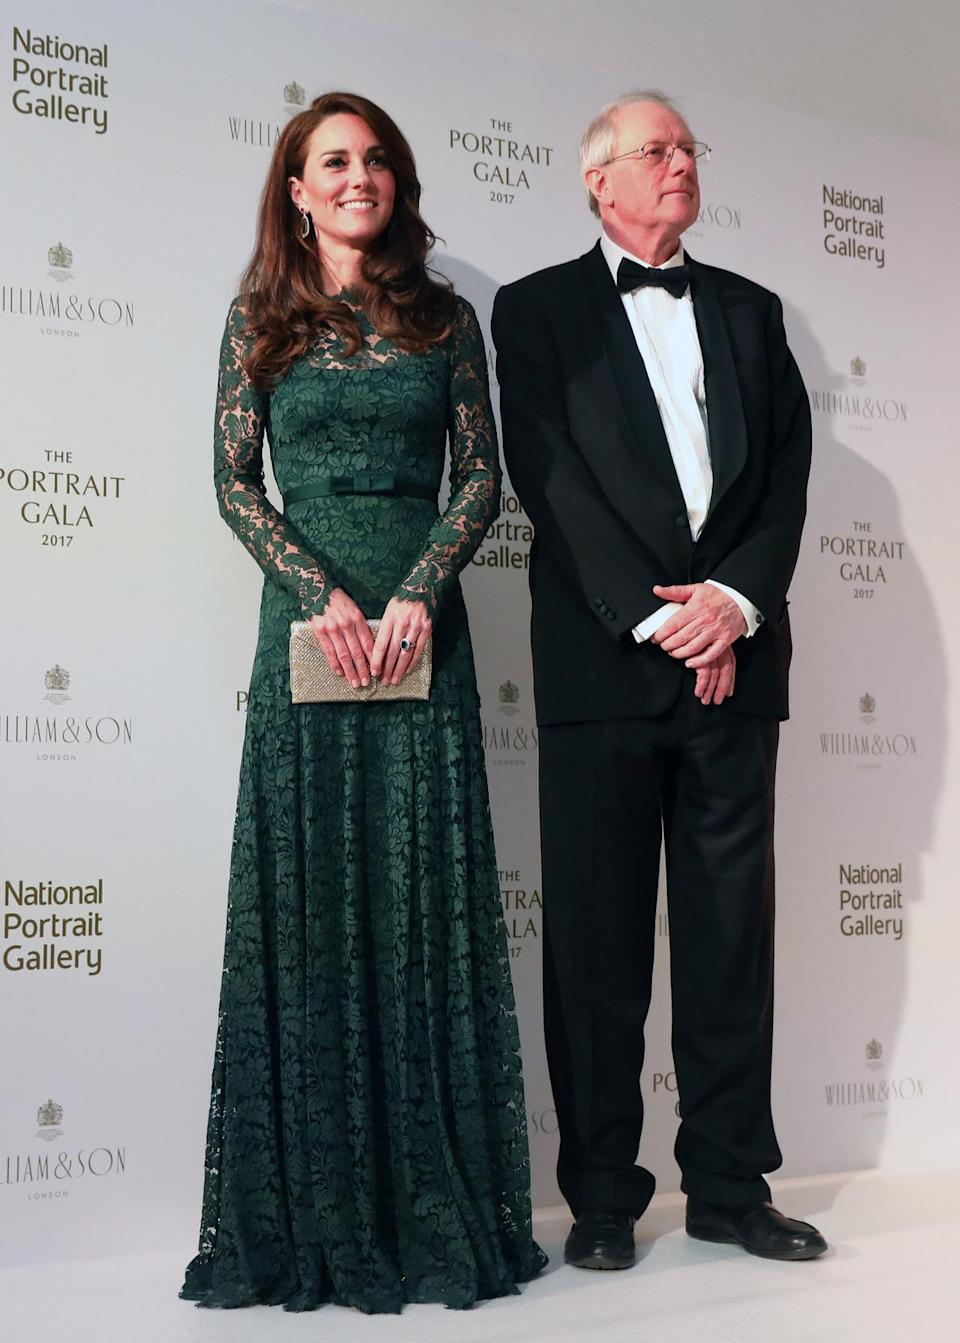 <p>Kate was a complete vision in an emerald lacy gown by Temperley London. Attending her second National Portrait Gala, the Duchess stole the show in the floor-length look accompanied by golden accessories: a glitter clutch by Wilbur and Gussie and strappy Jimmy Choo sandals.</p><p><i>[Photo: PA]</i> </p>